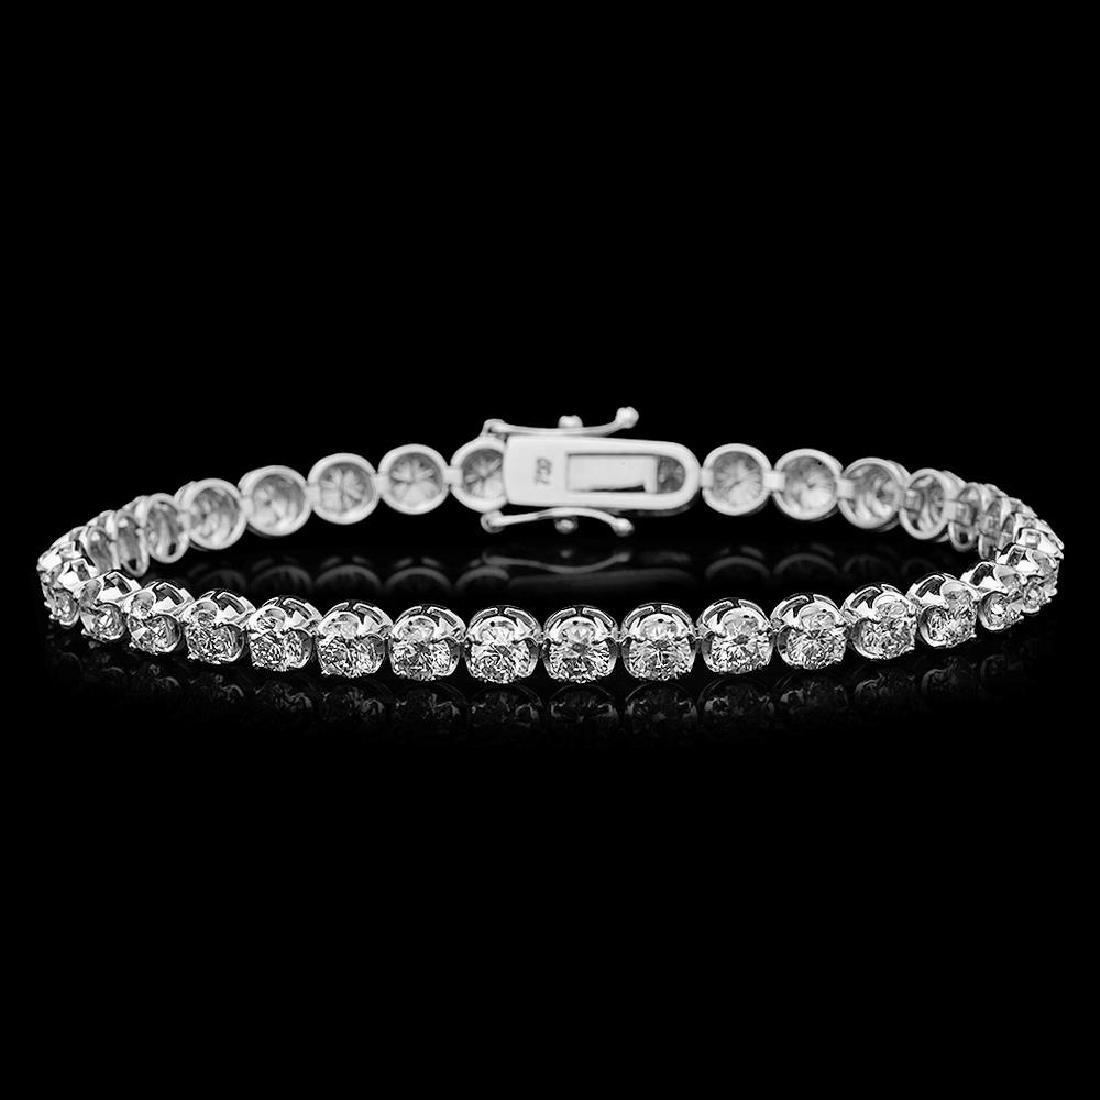 18K Gold 8.20 Diamond Bracelet